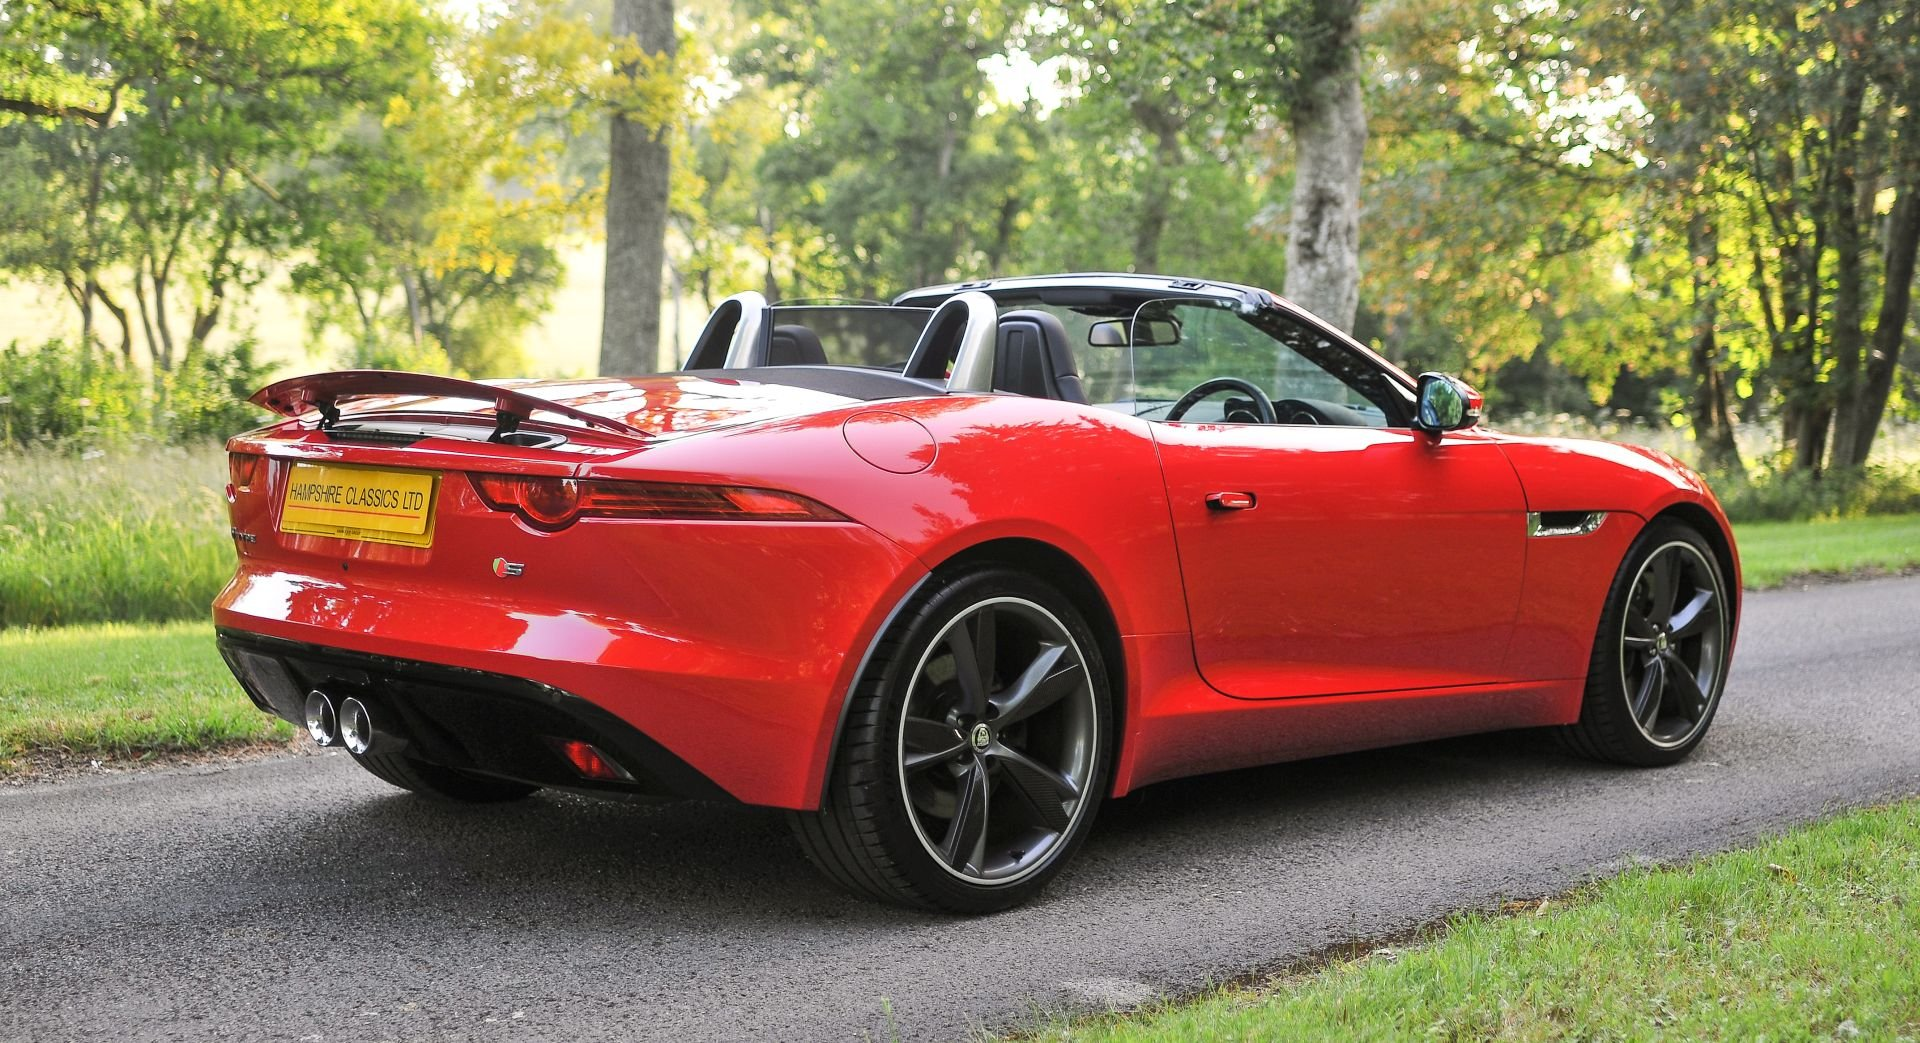 2014 Jaguar F-Type V6S Roadster (380PS) SOLD (picture 2 of 6)